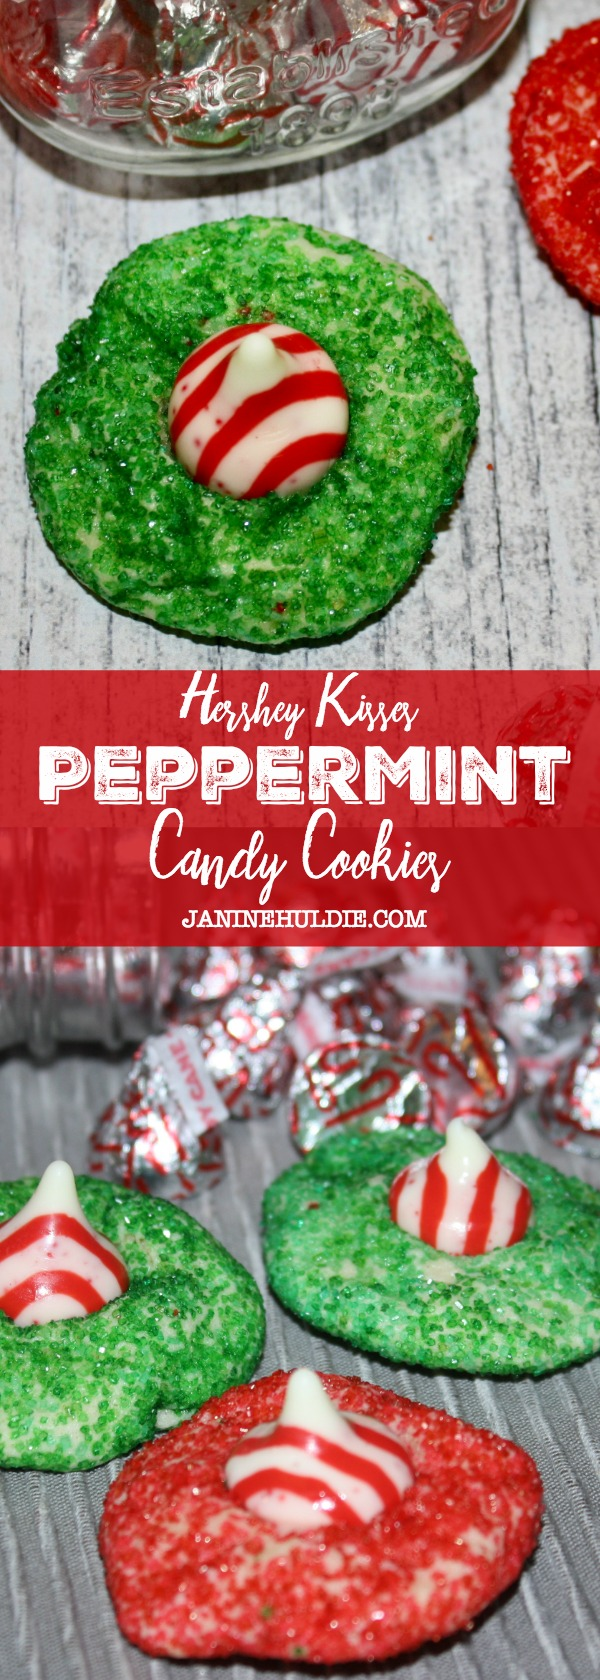 hershey kisses peppermint candy cookies